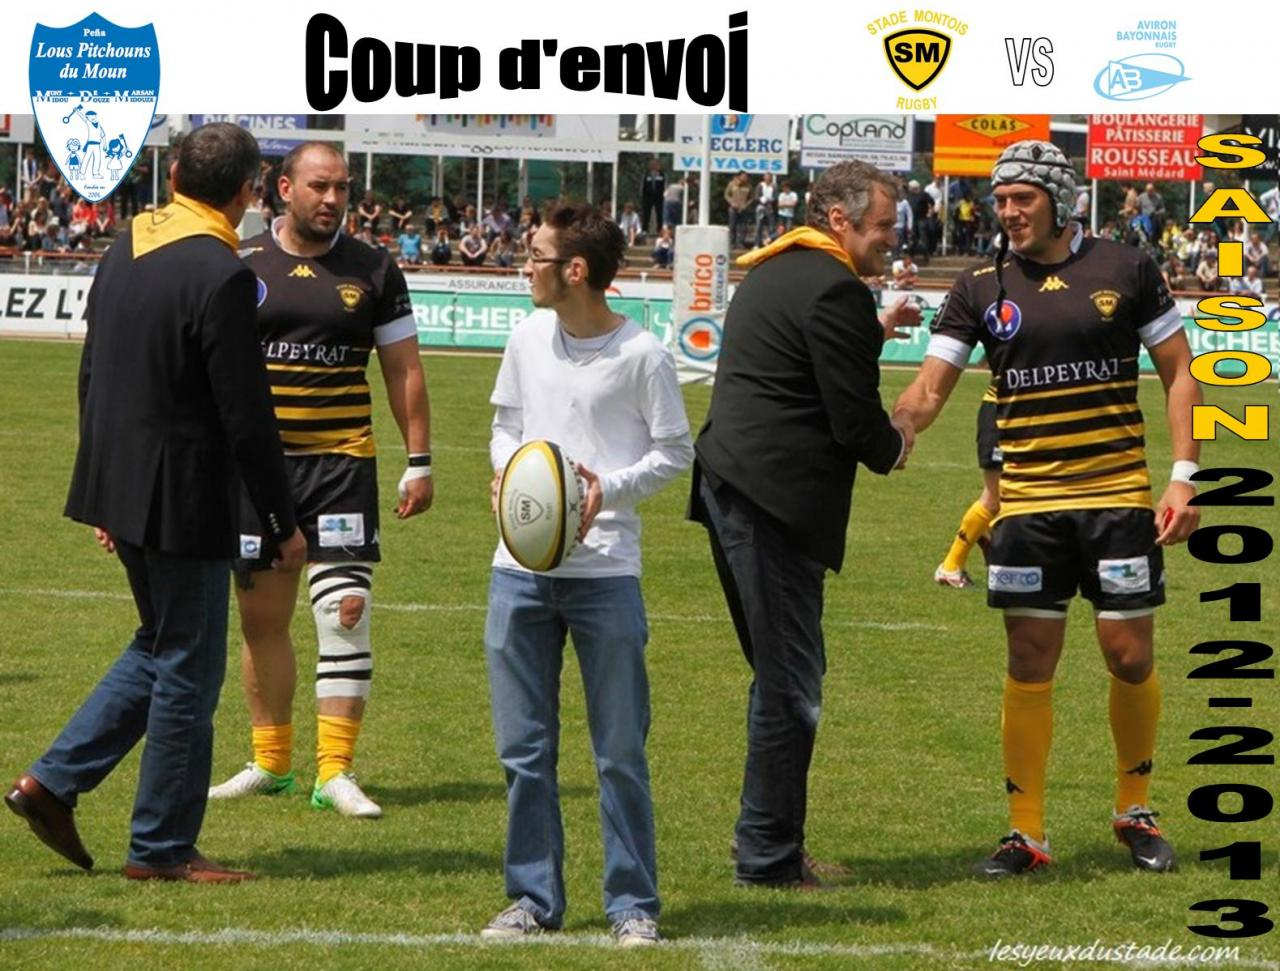 Coup d'envoi Rugby 04/05/13